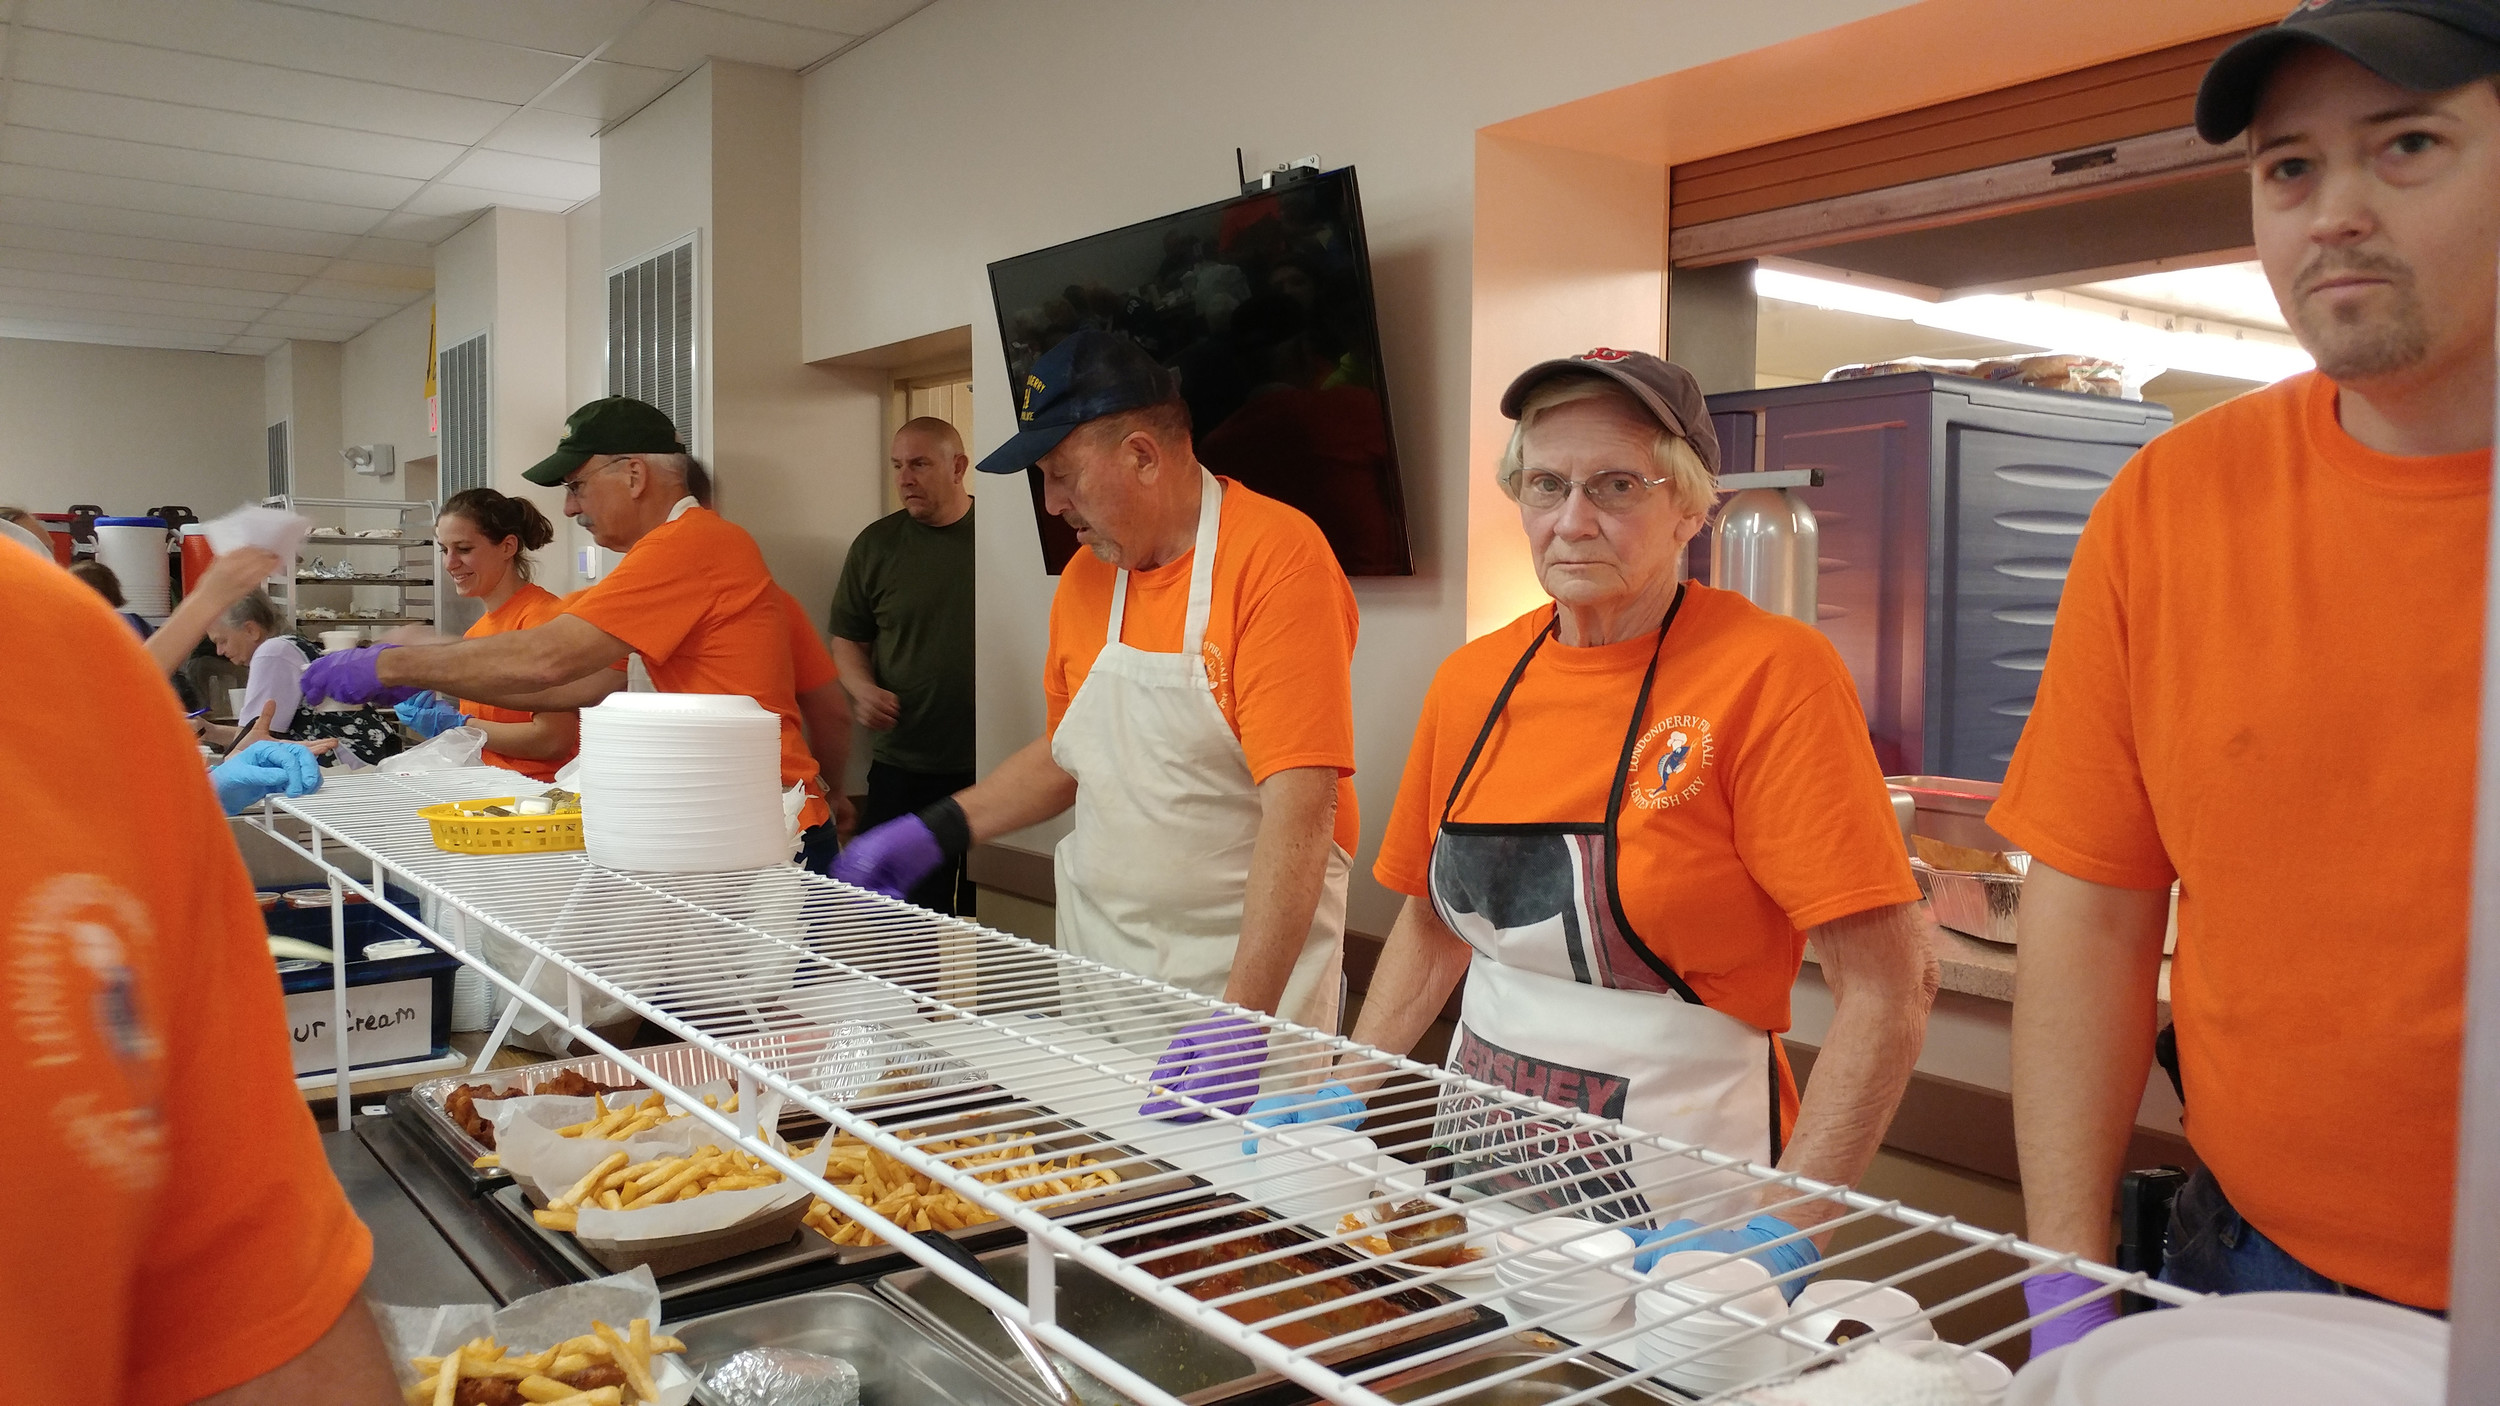 Left to right, Ivan and Sharon Arnold and Matt Naples were some of the servers preparing the trays for the runners.